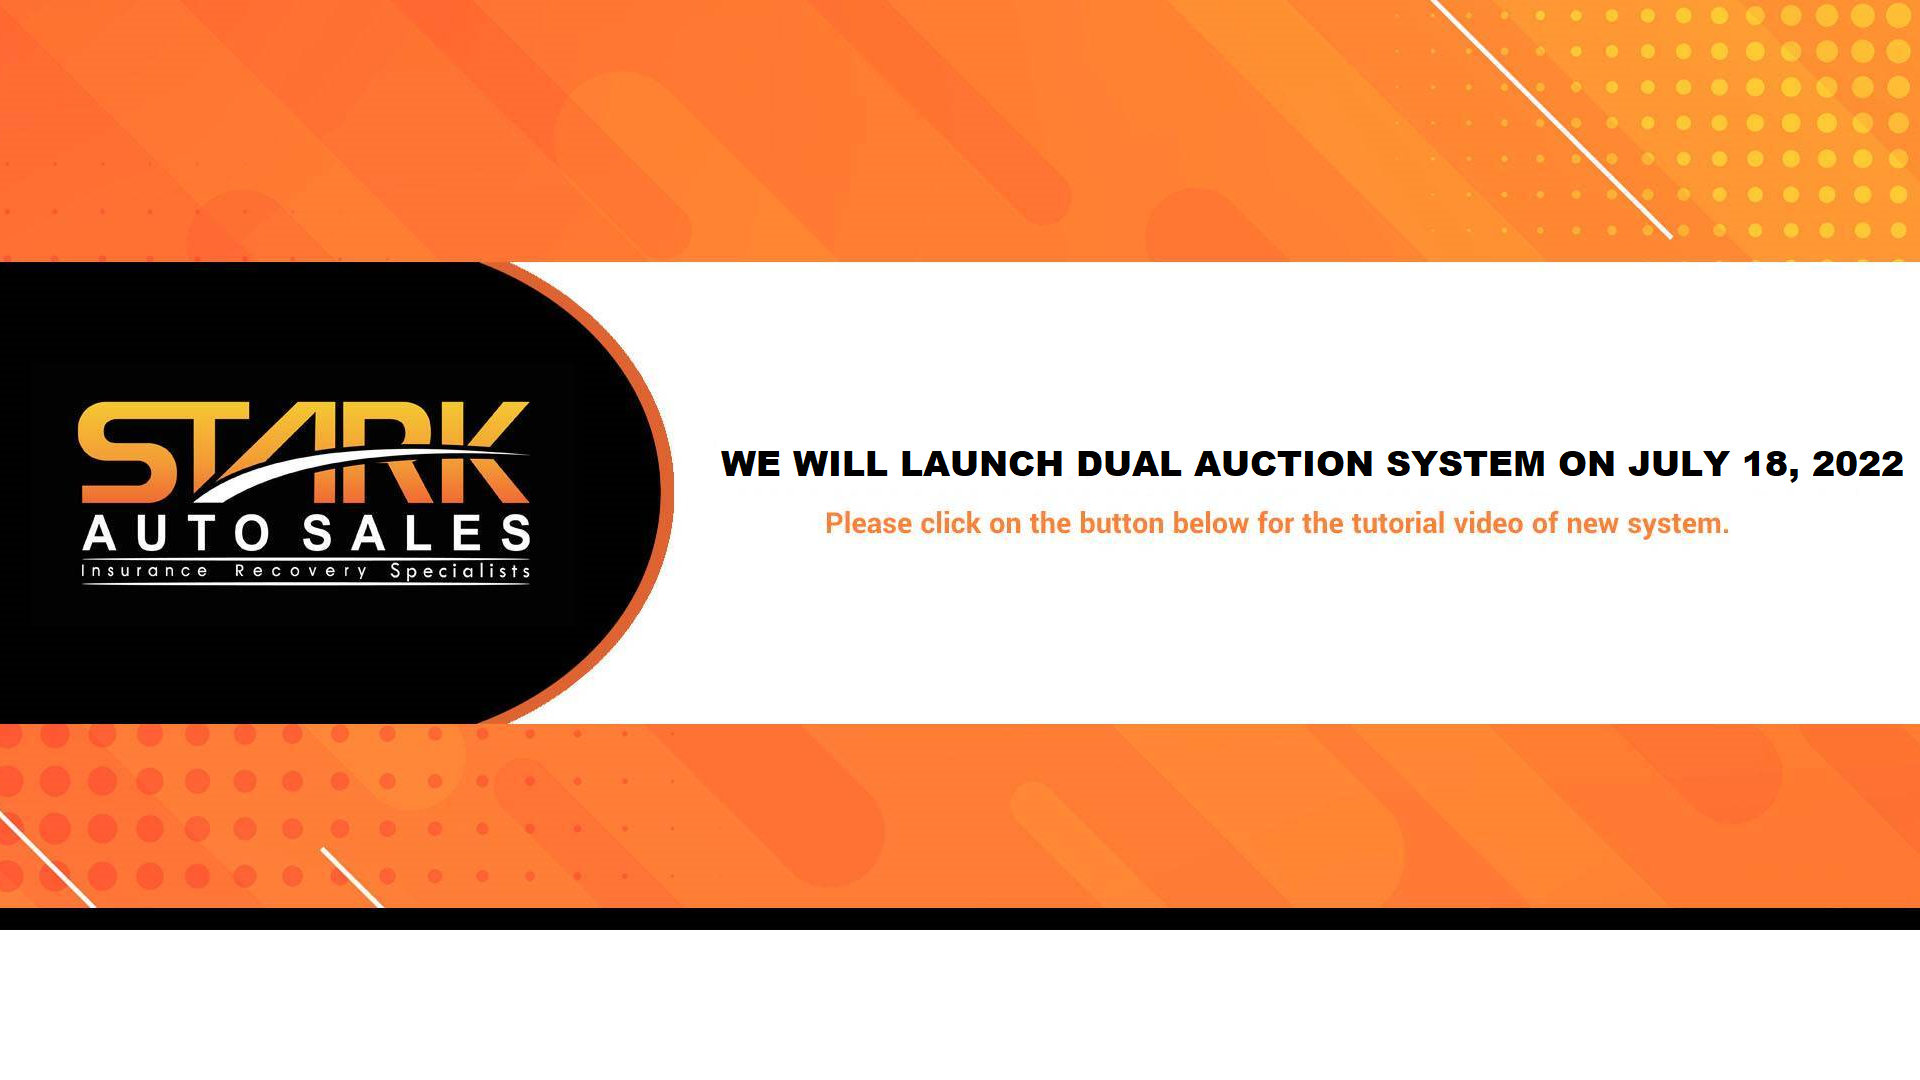 Stark Auto Sales Splash Notification Image